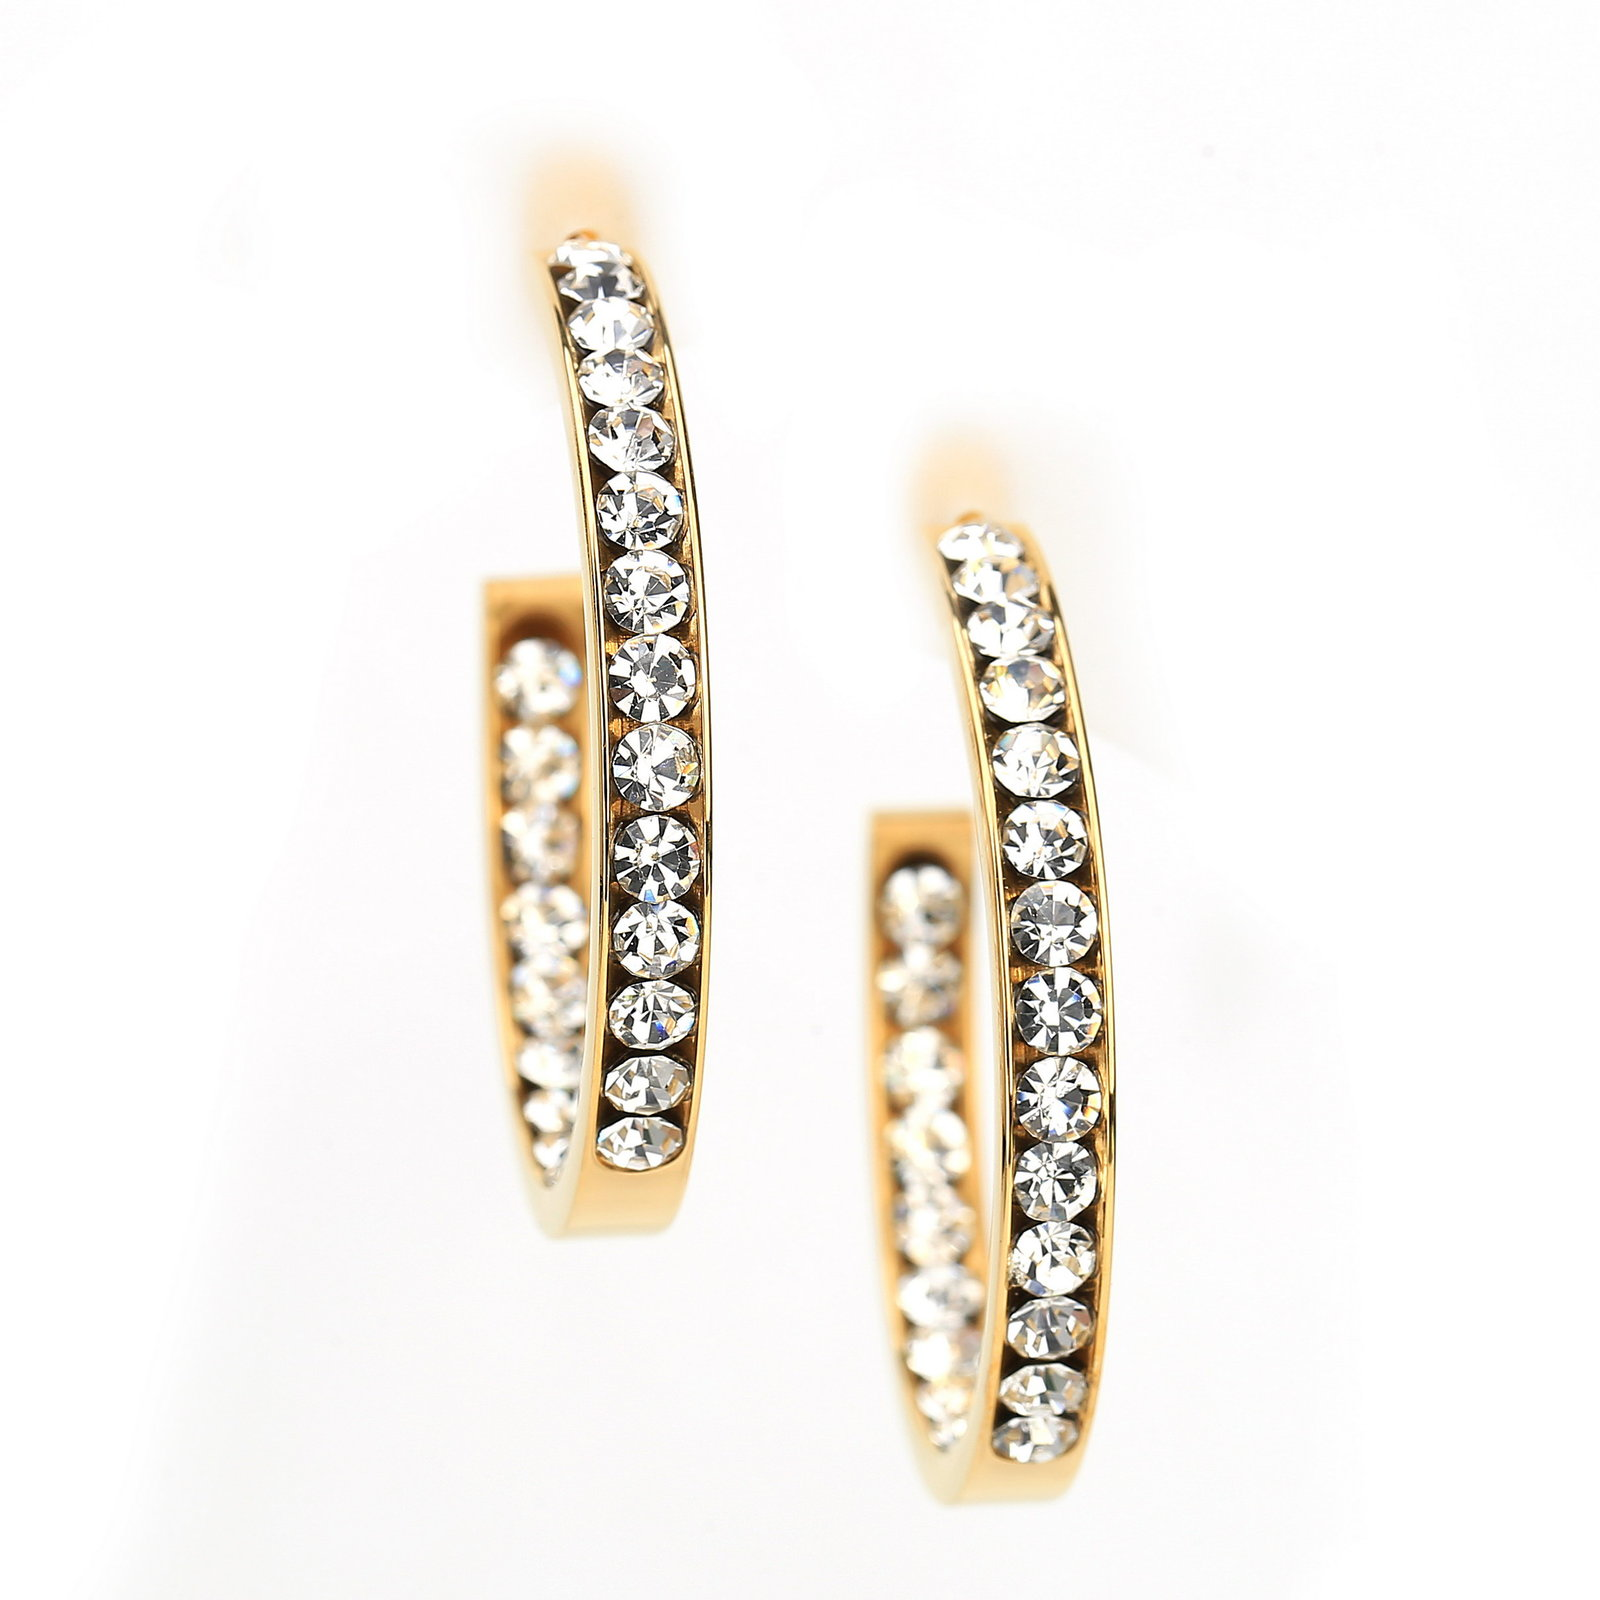 UNITED ELEGANCE Gold Tone Hoop Earrings With Sparkling Swarovski Style Crystals